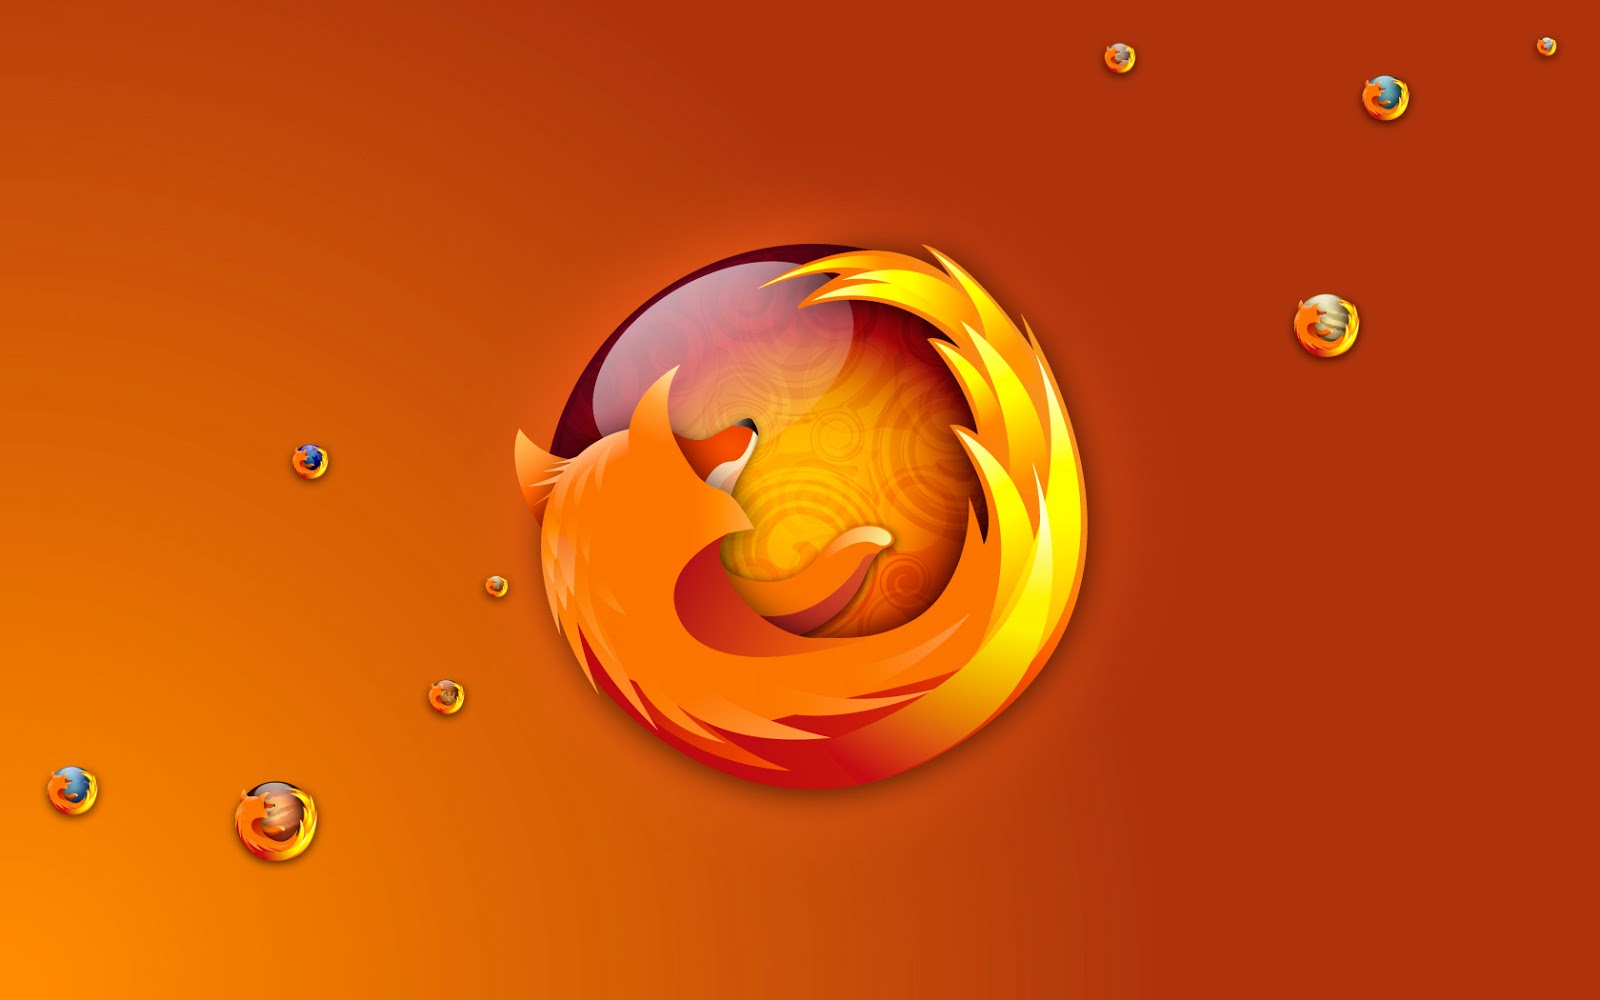 Free Download Mozilla Firefox Browser And Wallpapers